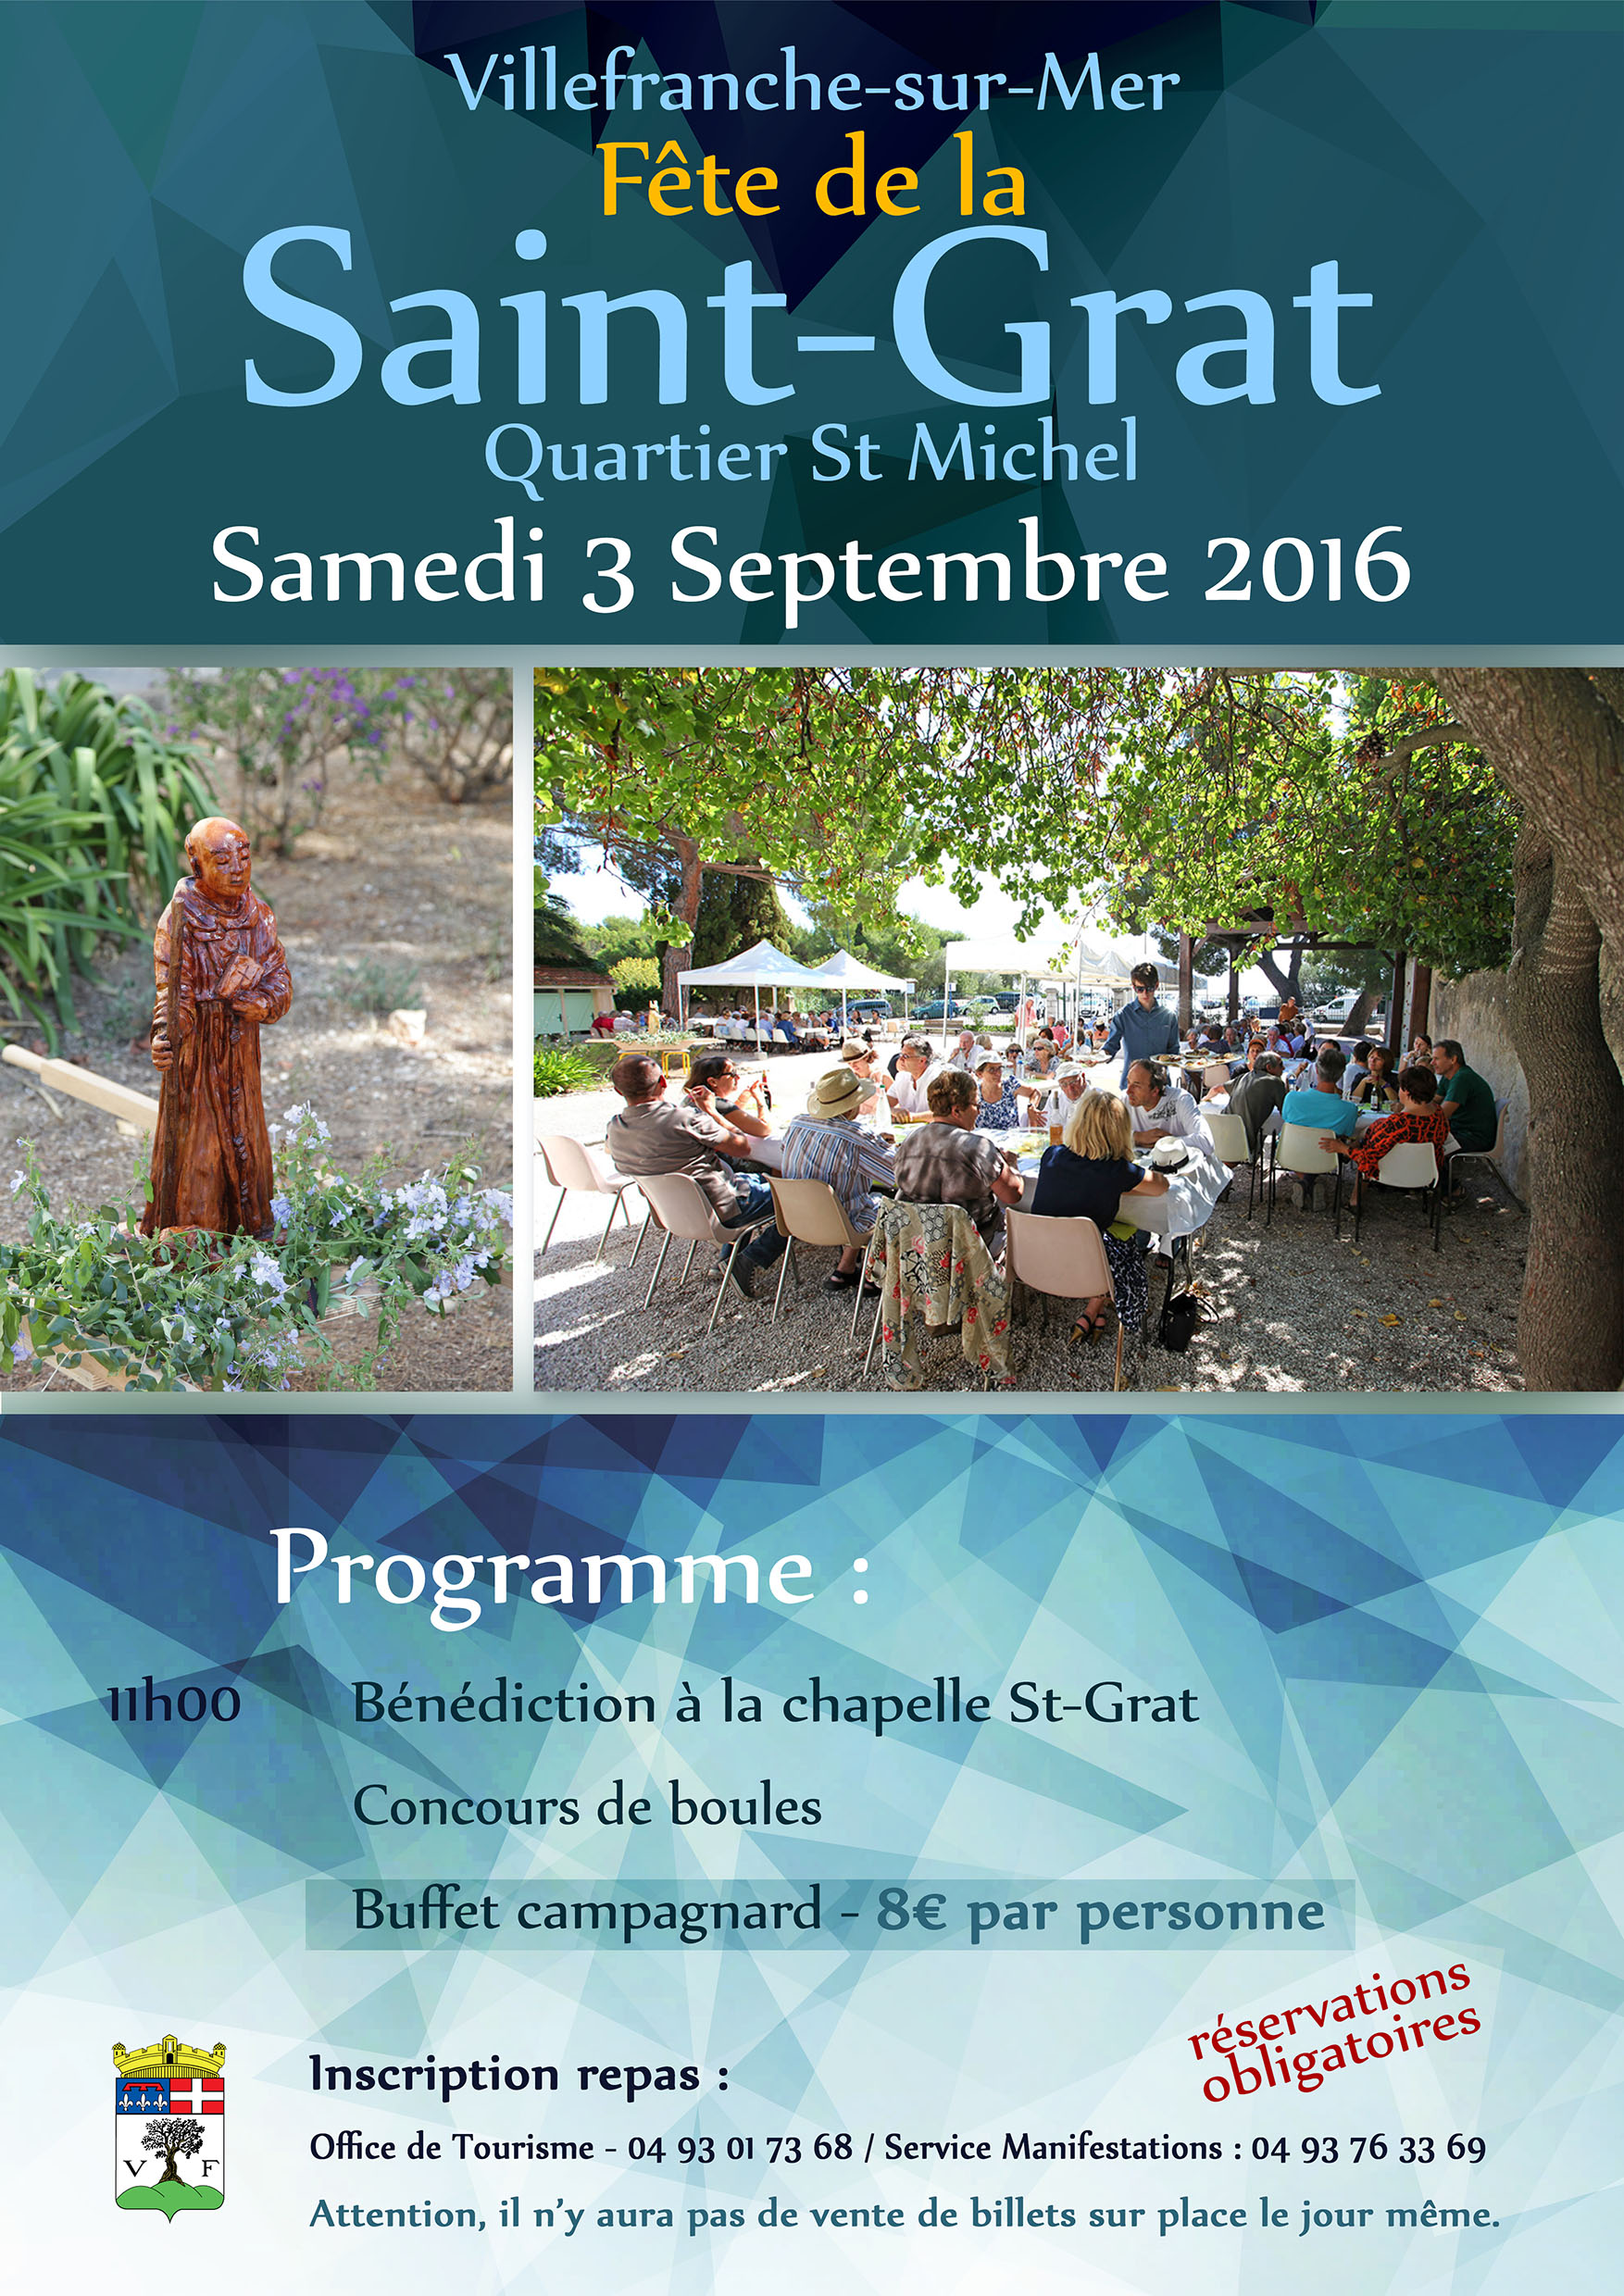 Fête Traditionnelle de la Saint-Grat !